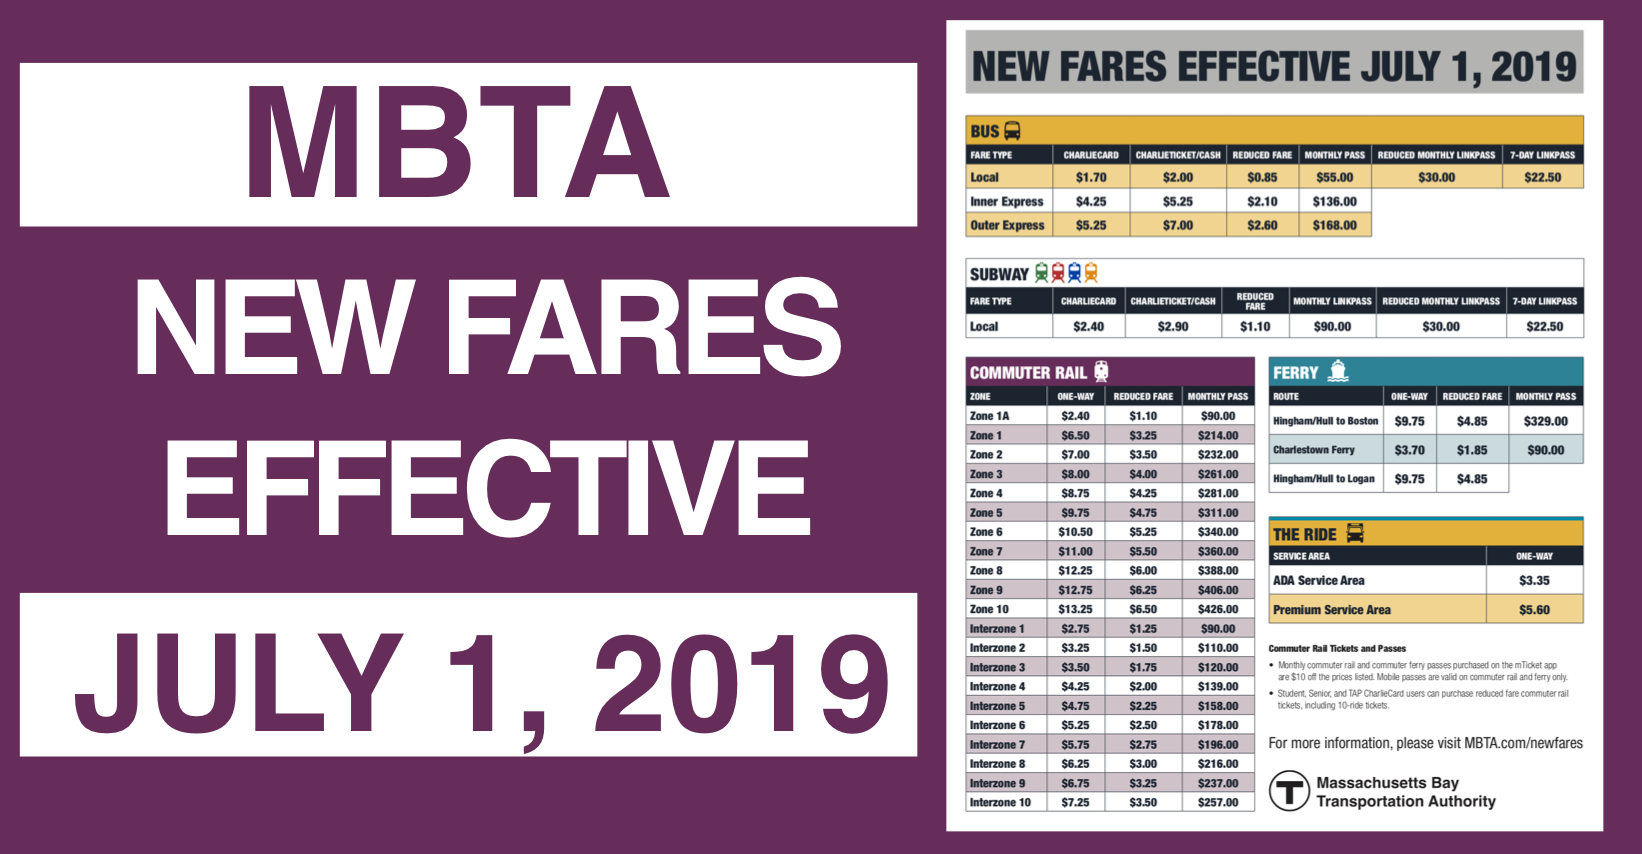 Travel on the @MBTA? Be prepared – new fares go into effect